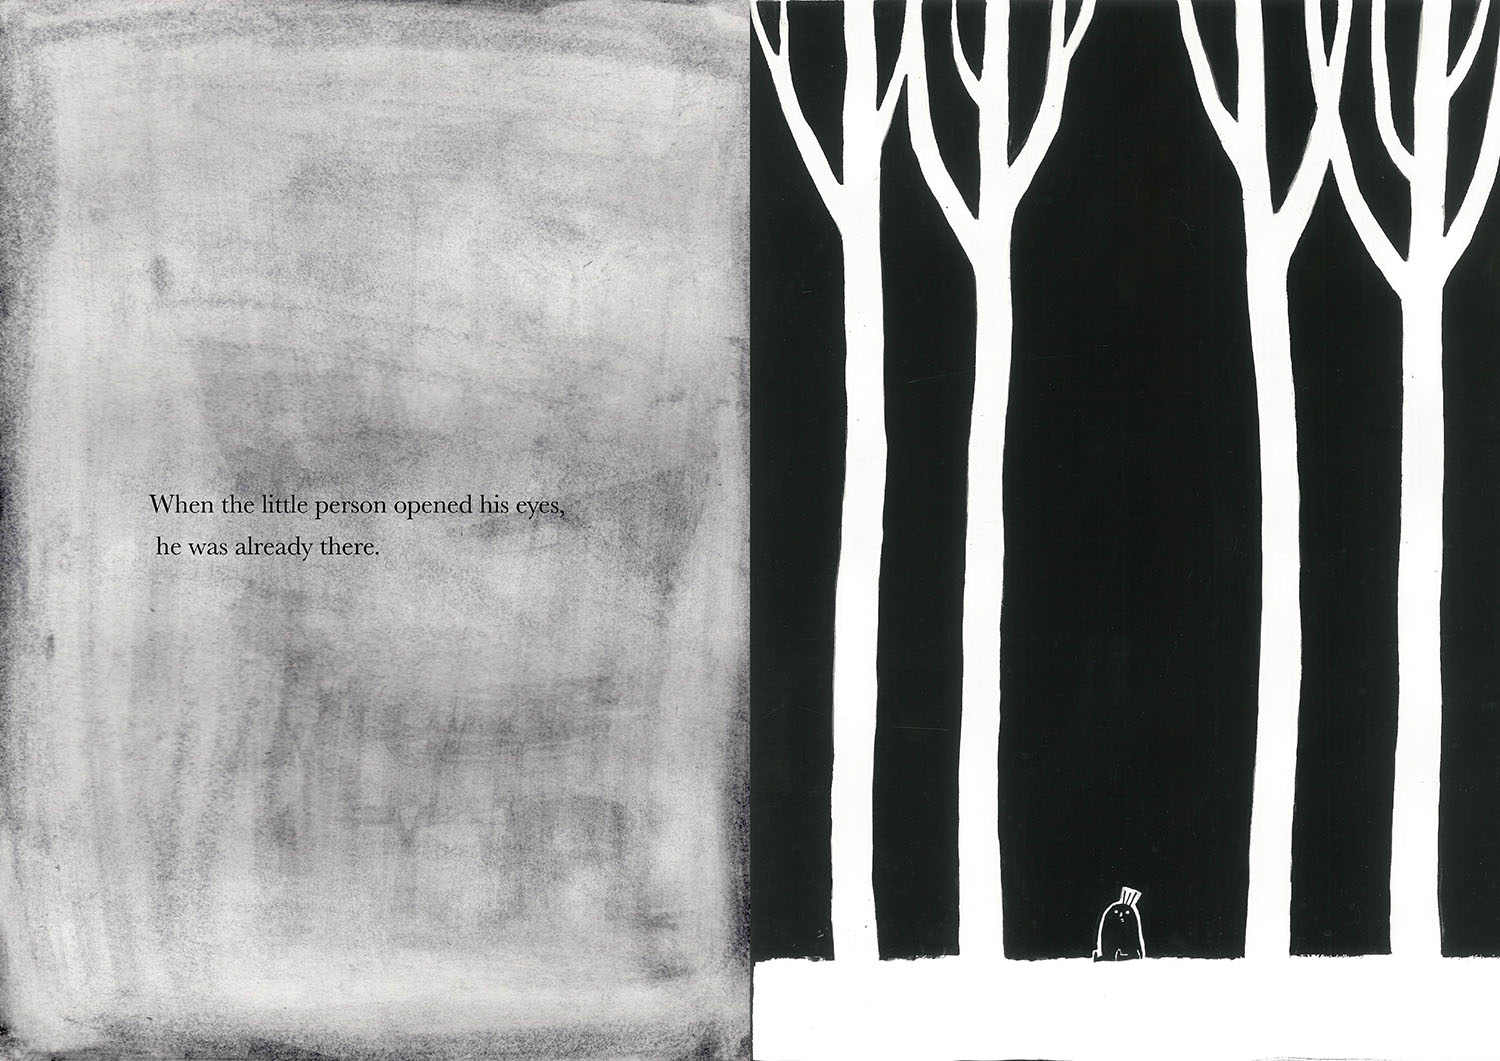 Black and white illustration from artists book of small creature in a wood with text from book